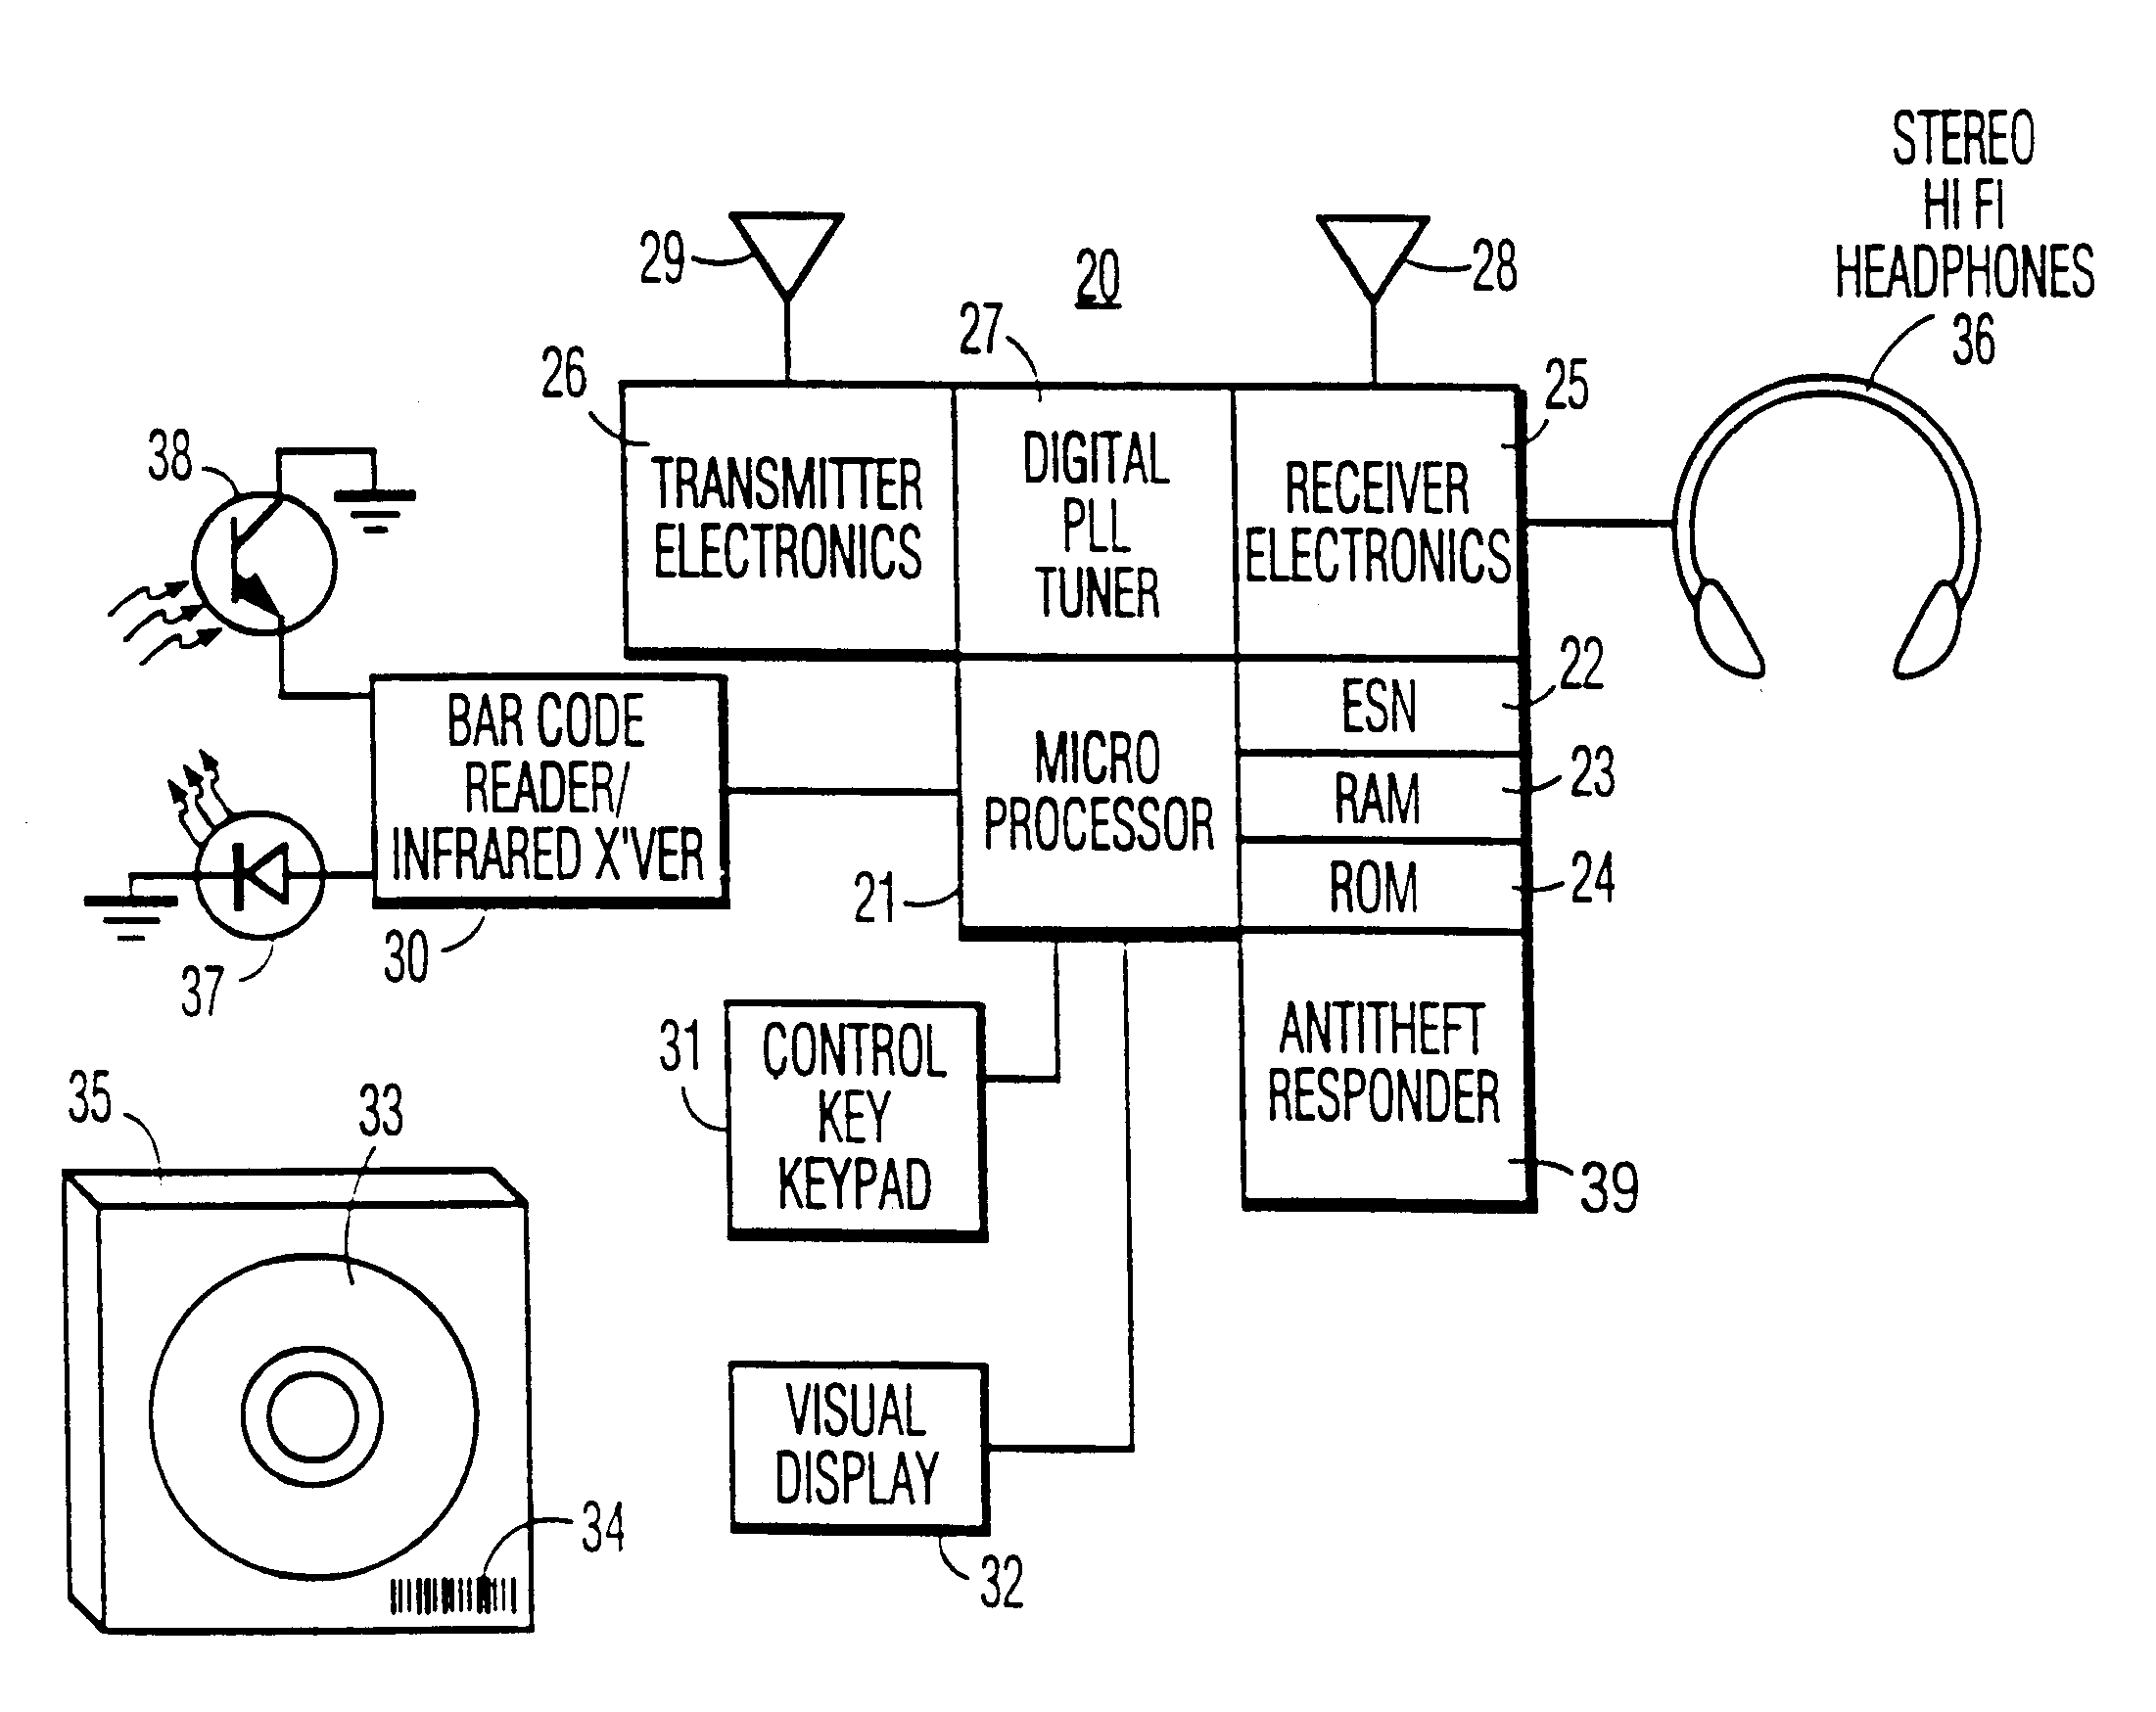 Patent Us6300880 Multichannel Audio Distribution System Having Saa1057 Pll Synthesized Fm Transmitter Drawing